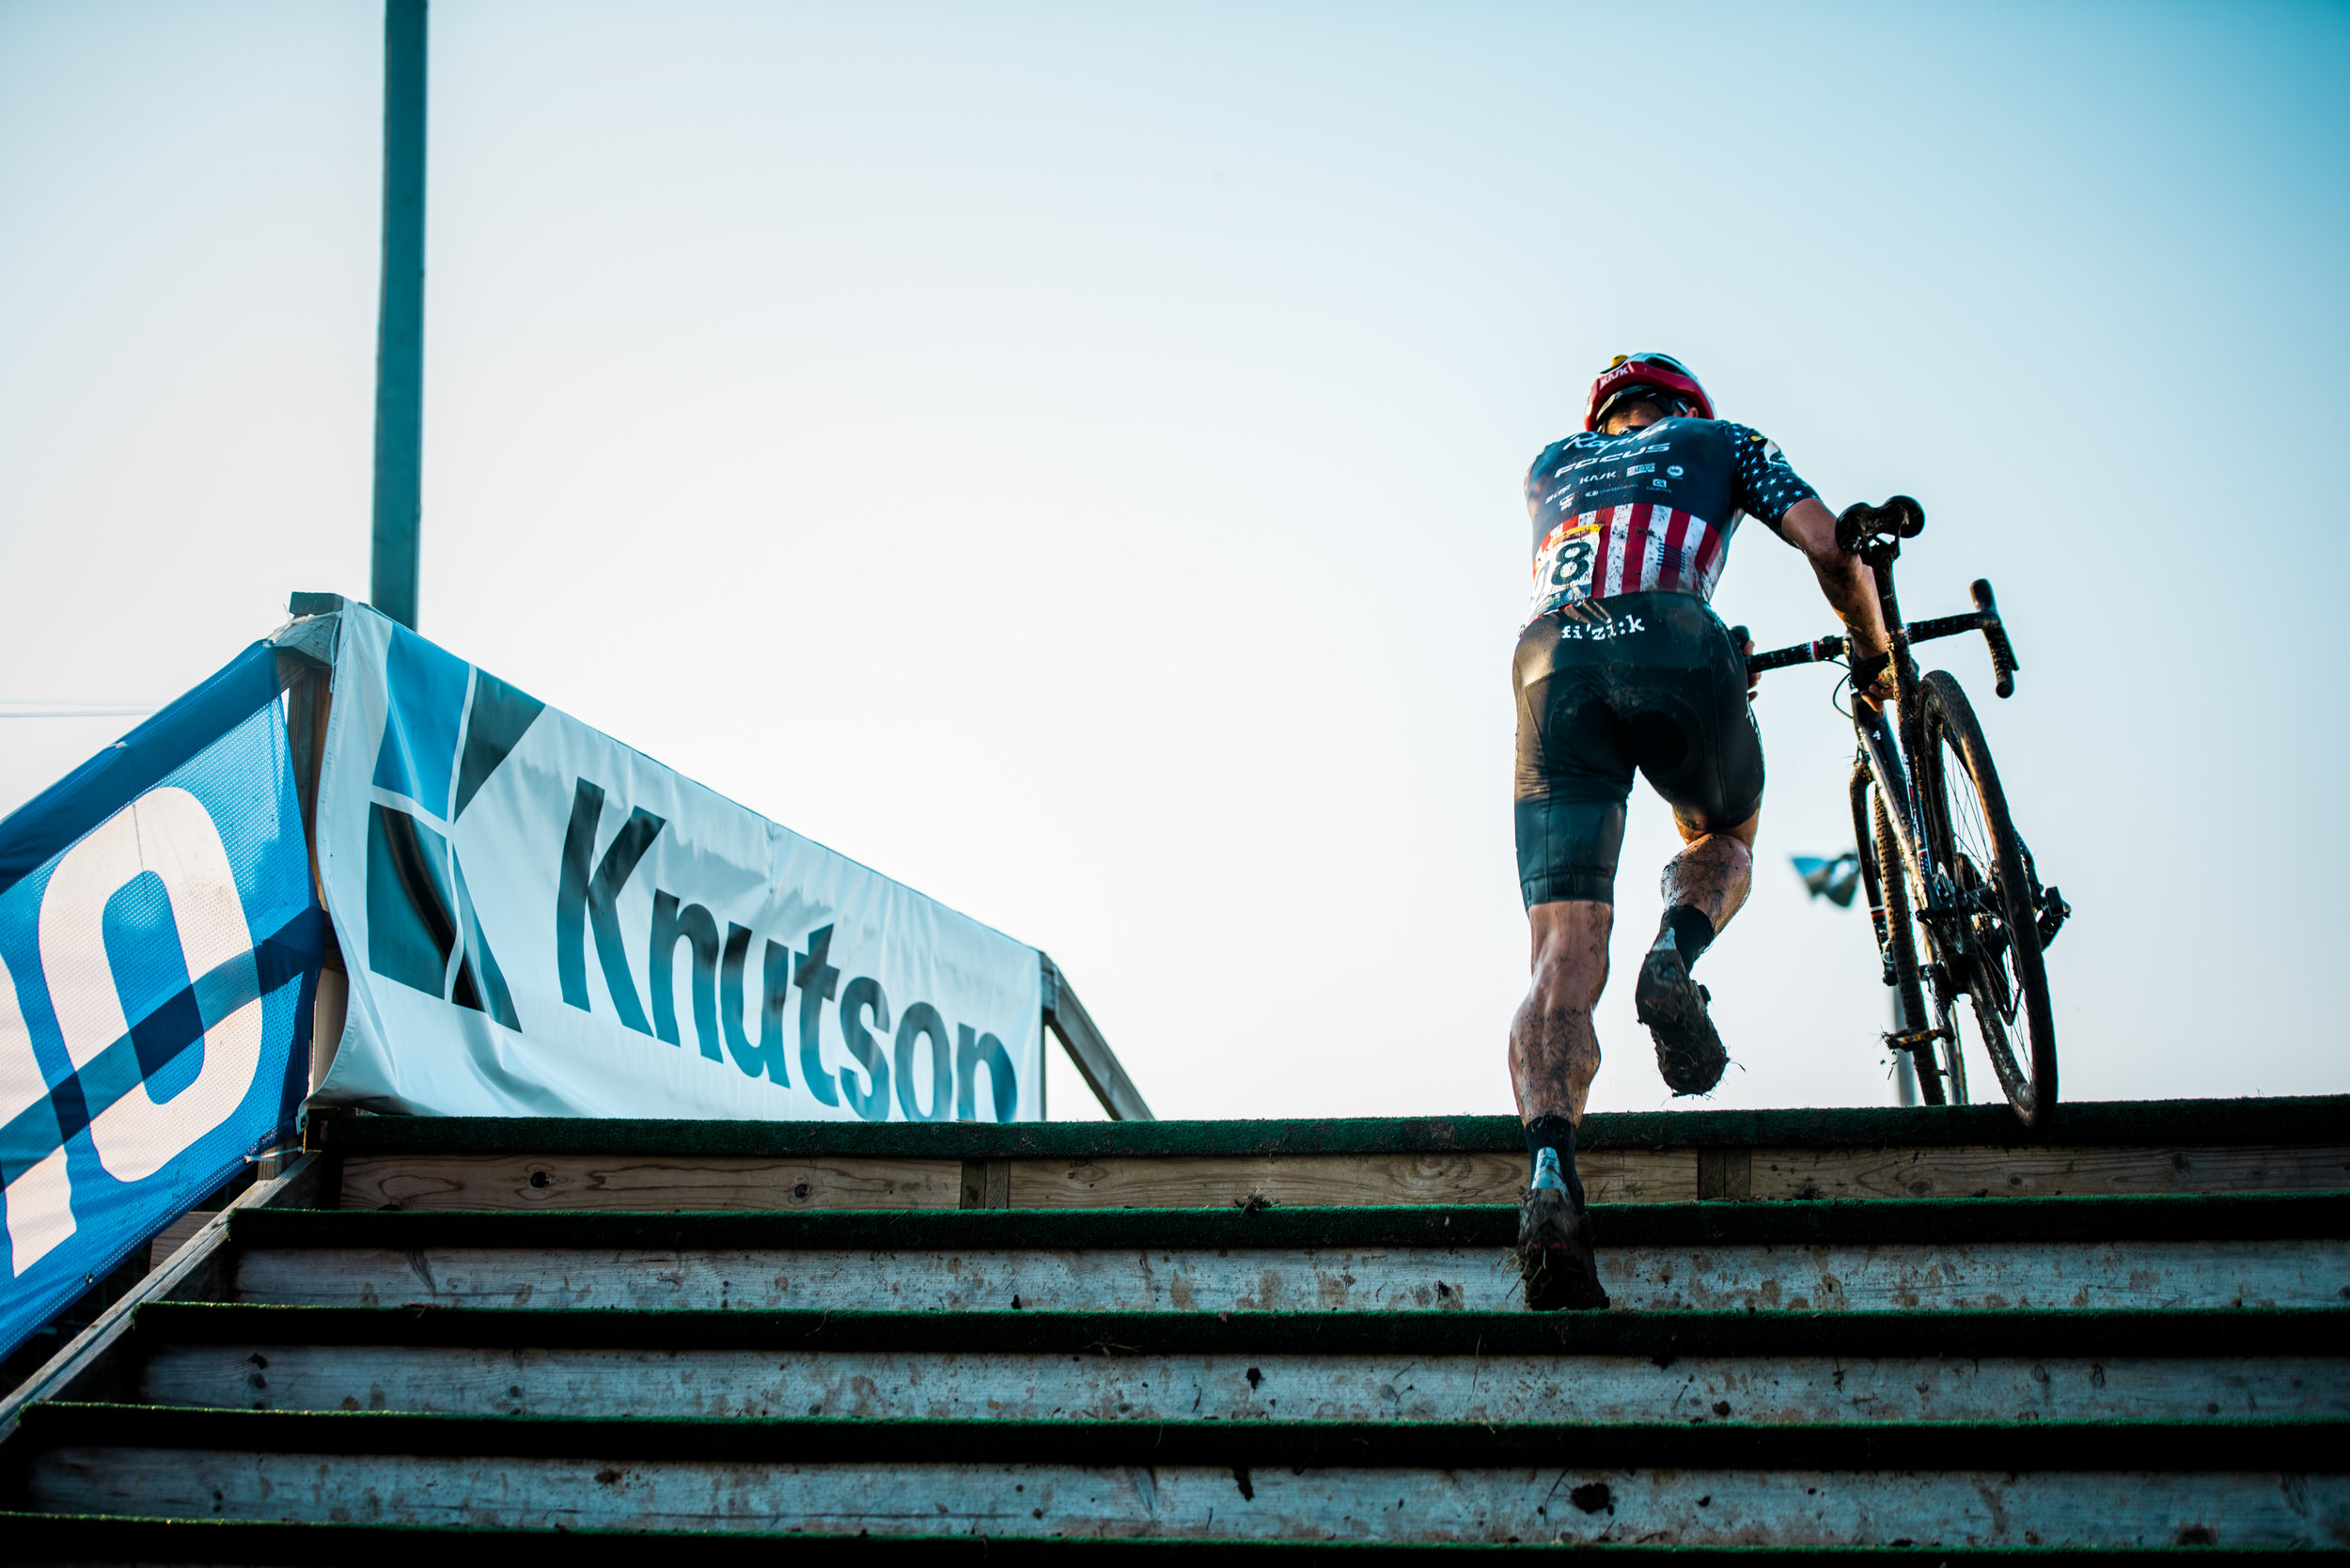 US National Cyclocross chamption Jeremy Powers finishes climbing the stairs of the fly-over obstacle.